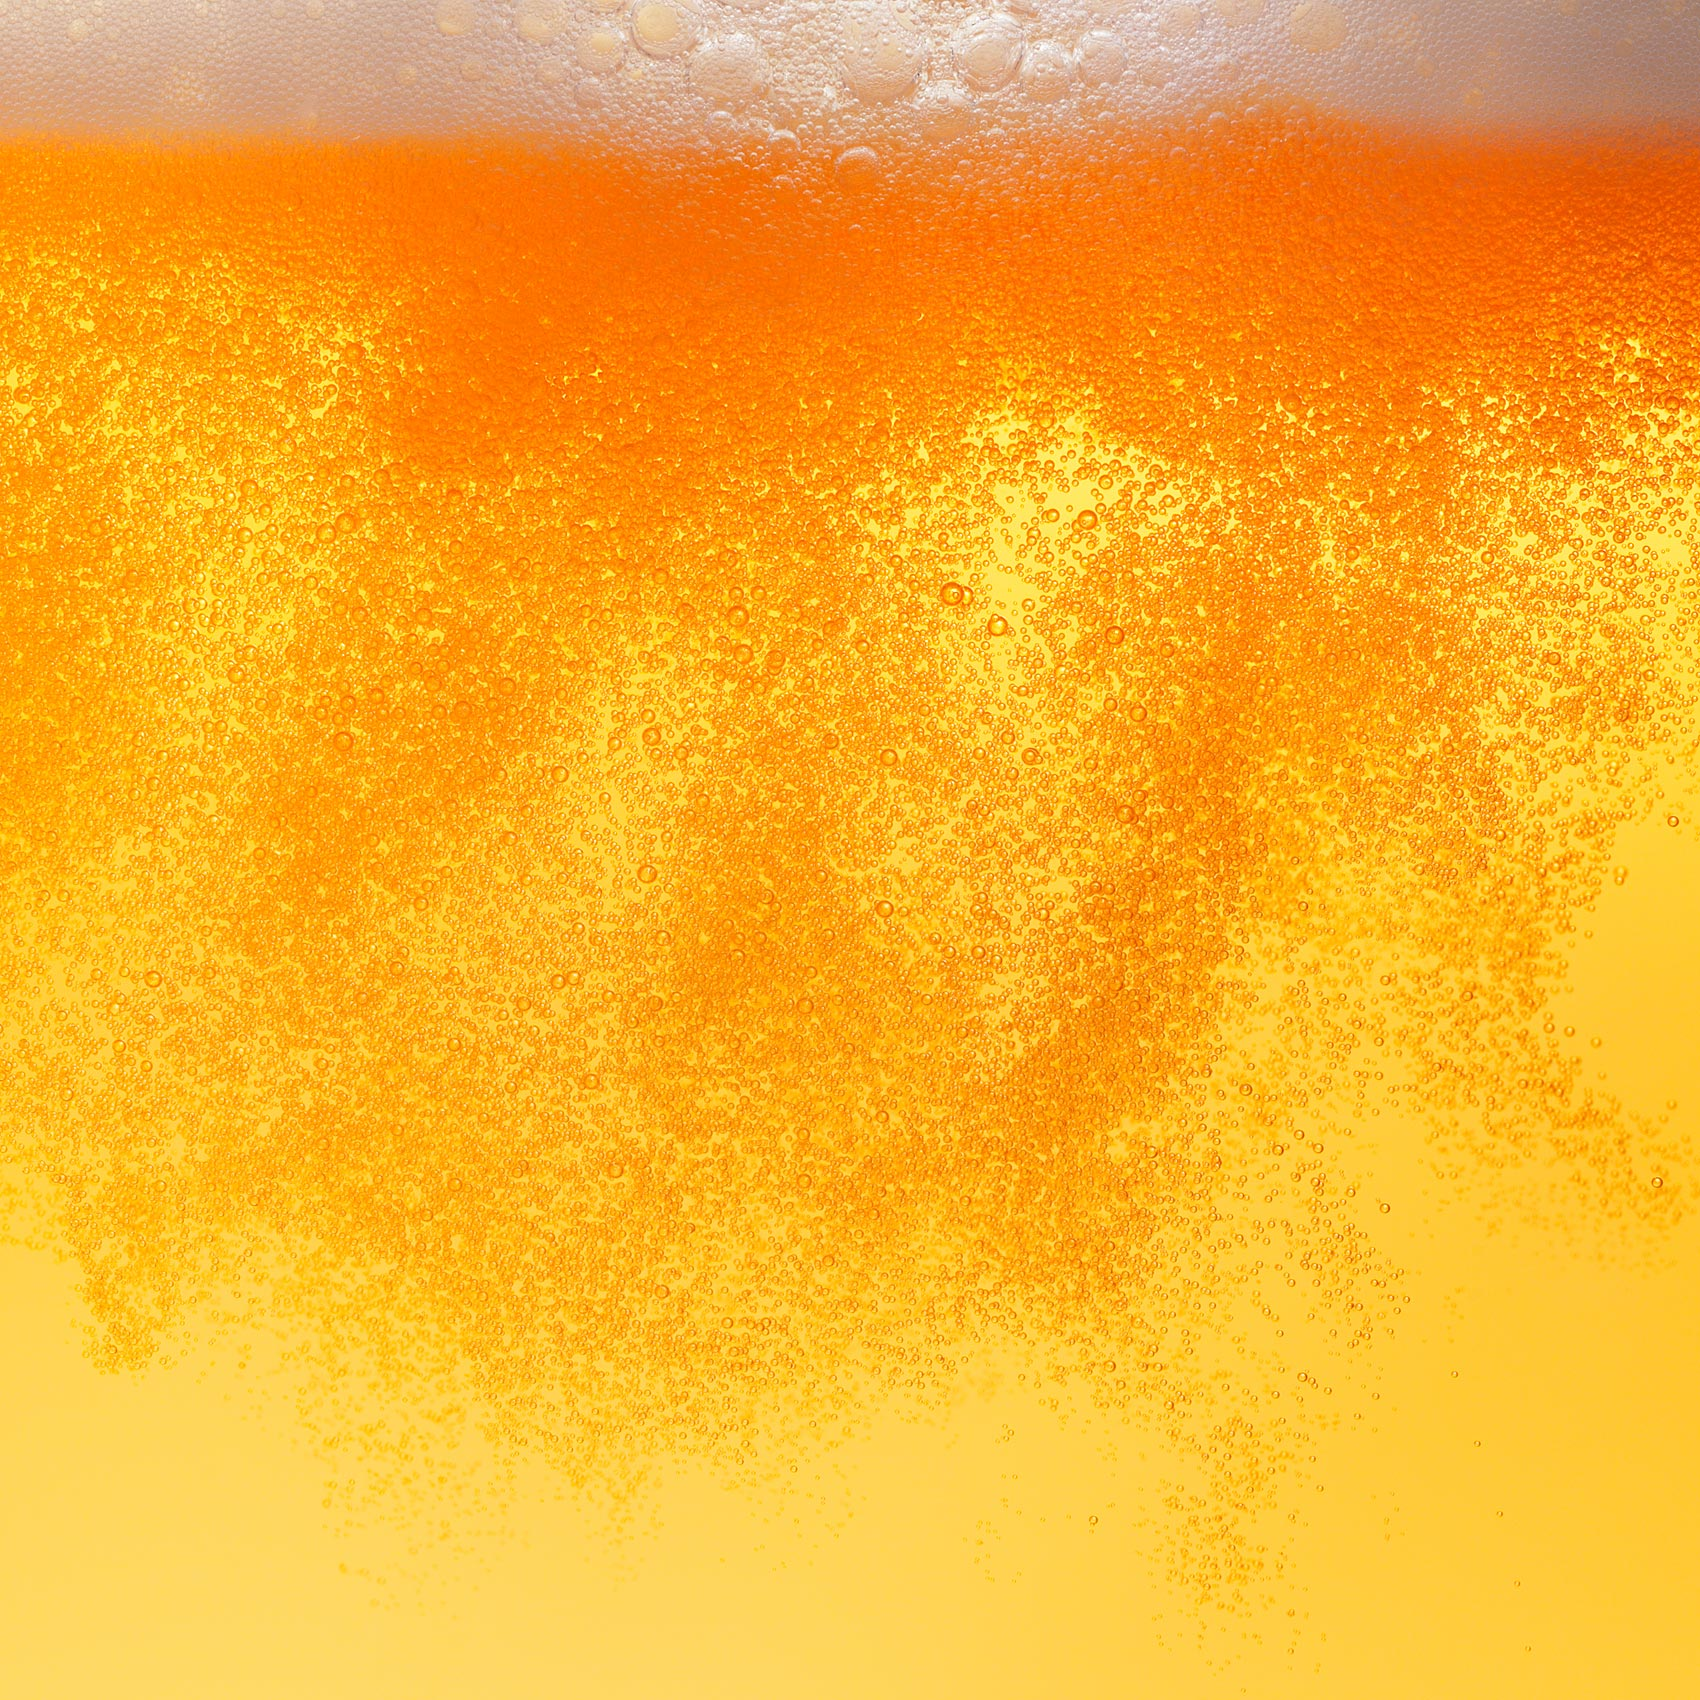 Nick_Rees-Drinks-Beer_Bubble-16